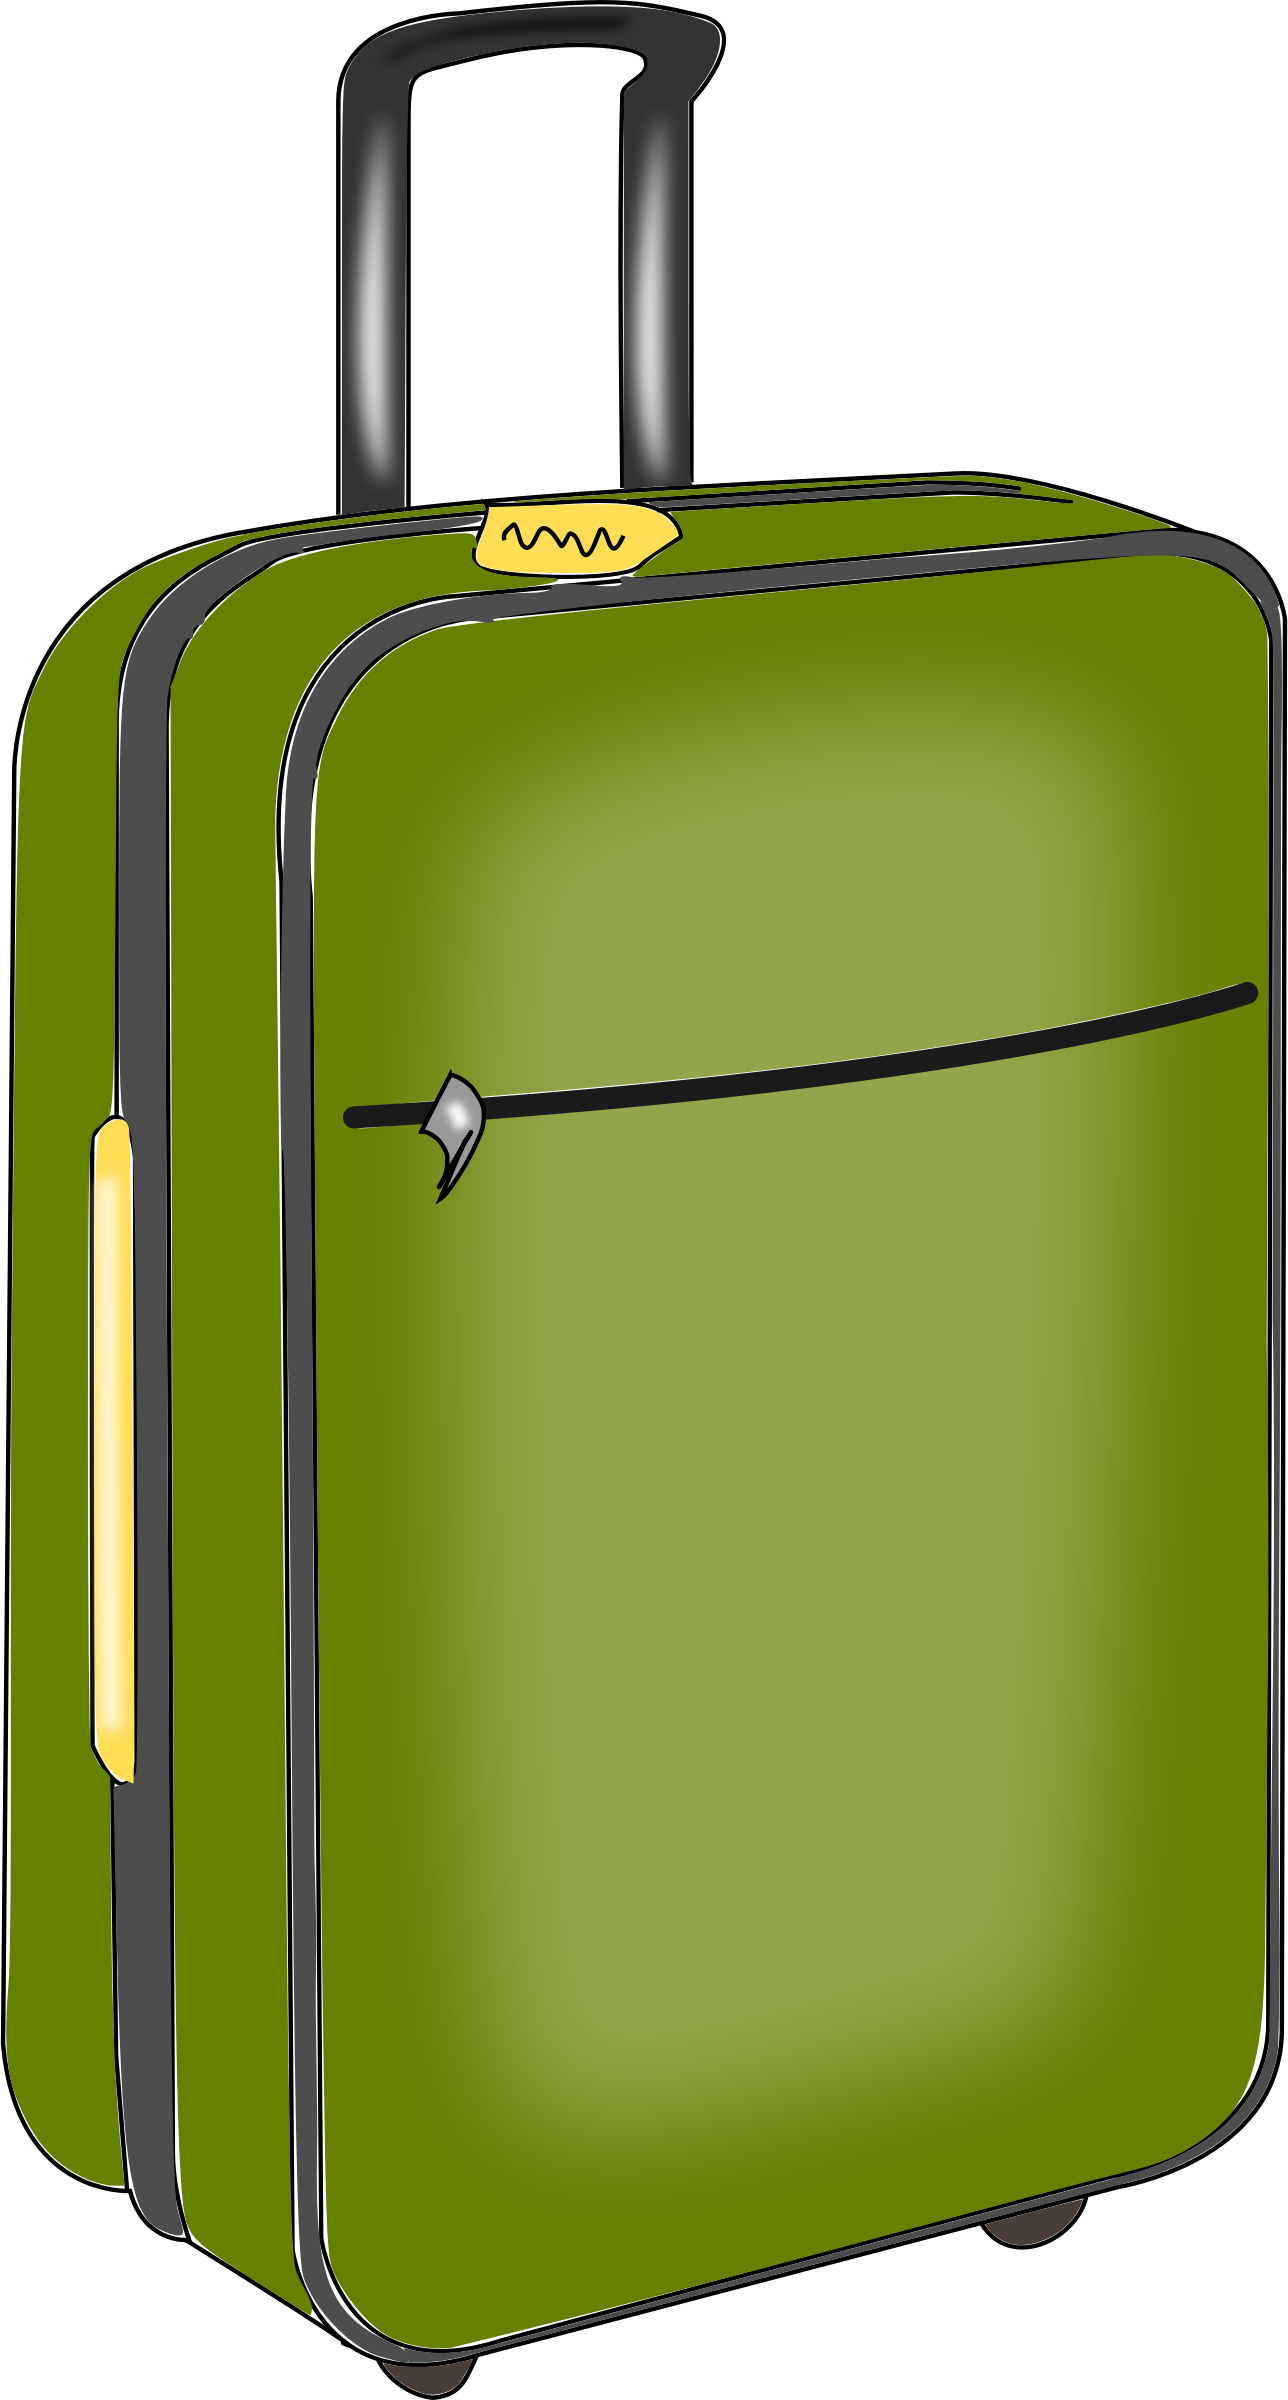 luggage png library. Briefcase clipart cartoon png download